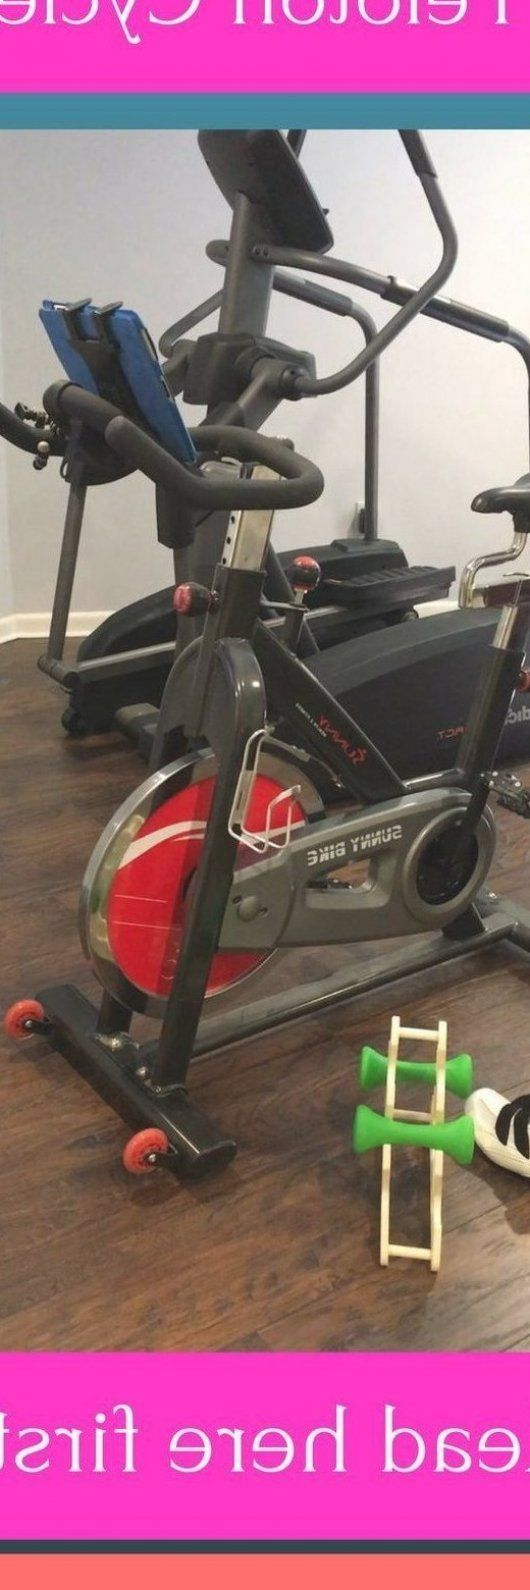 Interested In Getting A Peloton Spin Bike Did You Know There Is A Peloton App It Gives You Access To The Same Live And On De In 2020 Peloton Cycle Peloton Spin